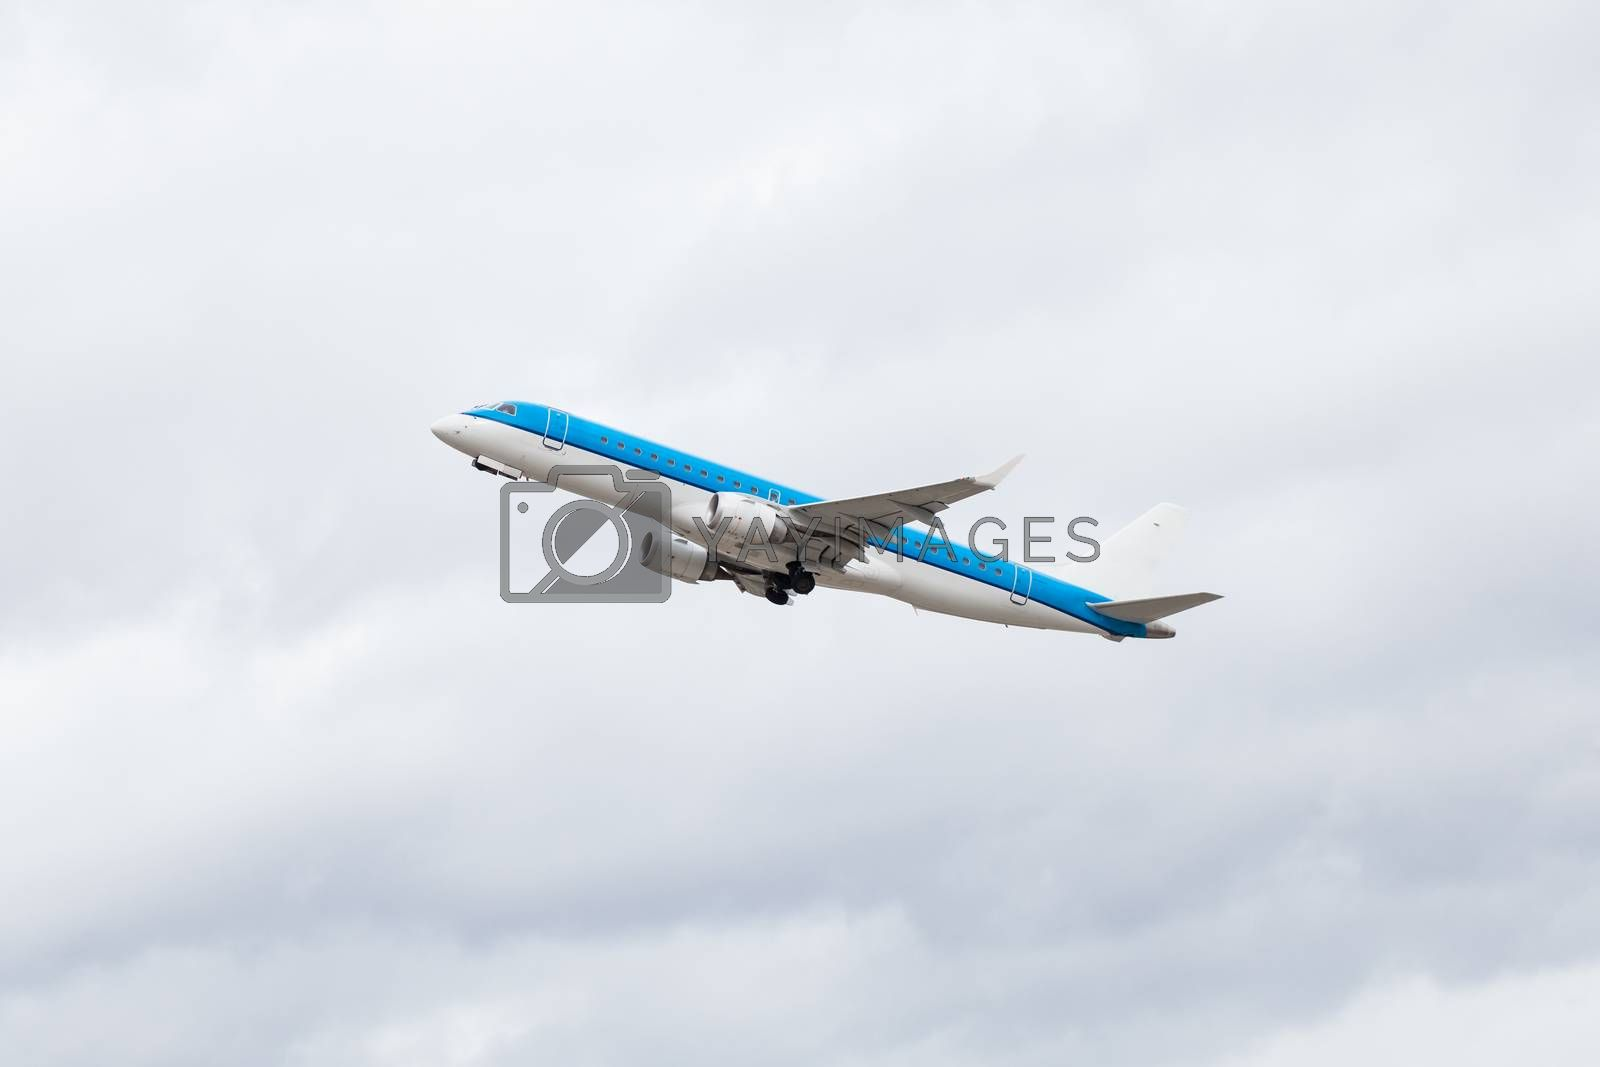 Commercial airliner flying midair after takeoff with the landing gear and wheels still extended as it climbs for height against a blue sky, conceptual of air travel